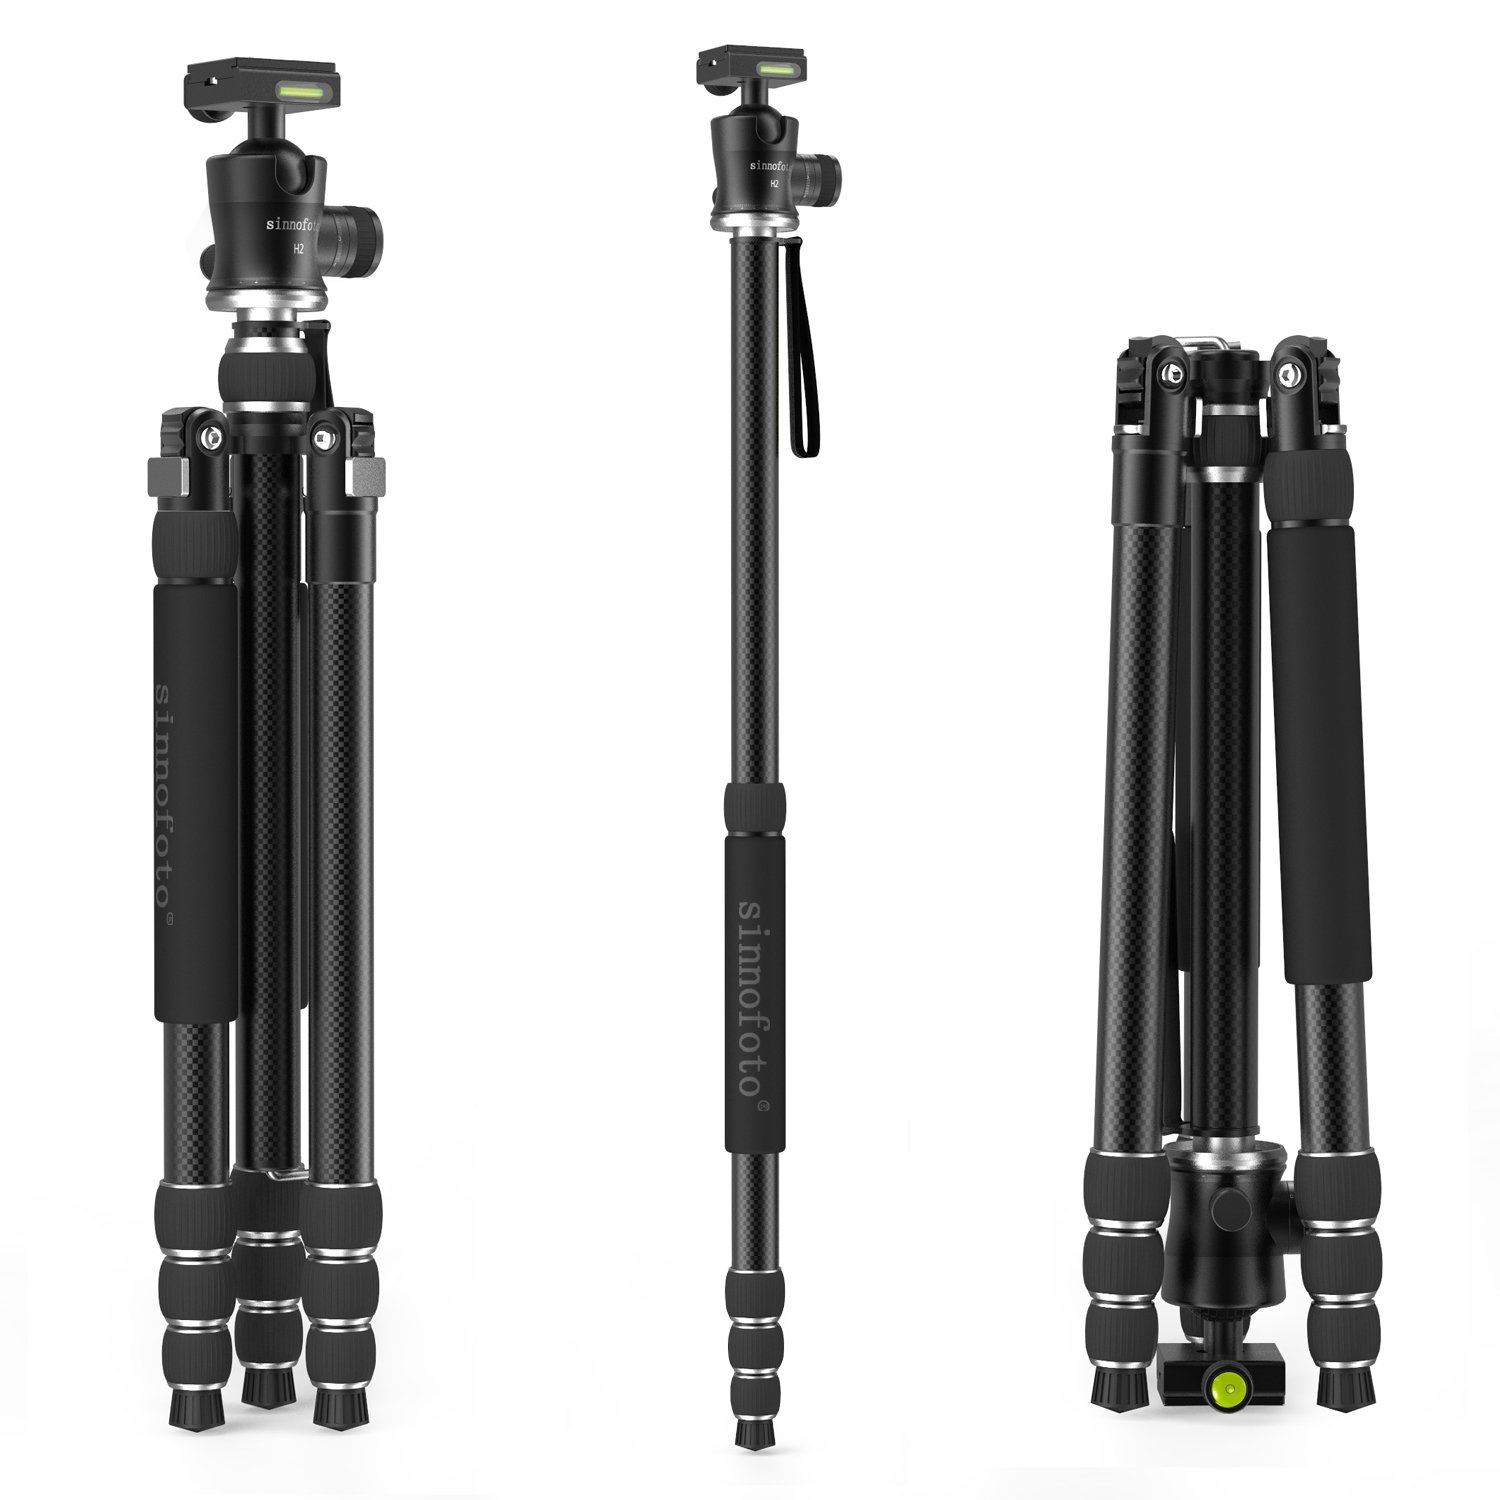 """Sinnofoto T8H2 71"""" Max loading 20kg 70% Carbon Fiber Portable Travel Camera Tripod Lightweight with 360 Degree Tripod Ball Head Compact With DSRL Camera 71"""" Tripod with Nice Travel Bag"""